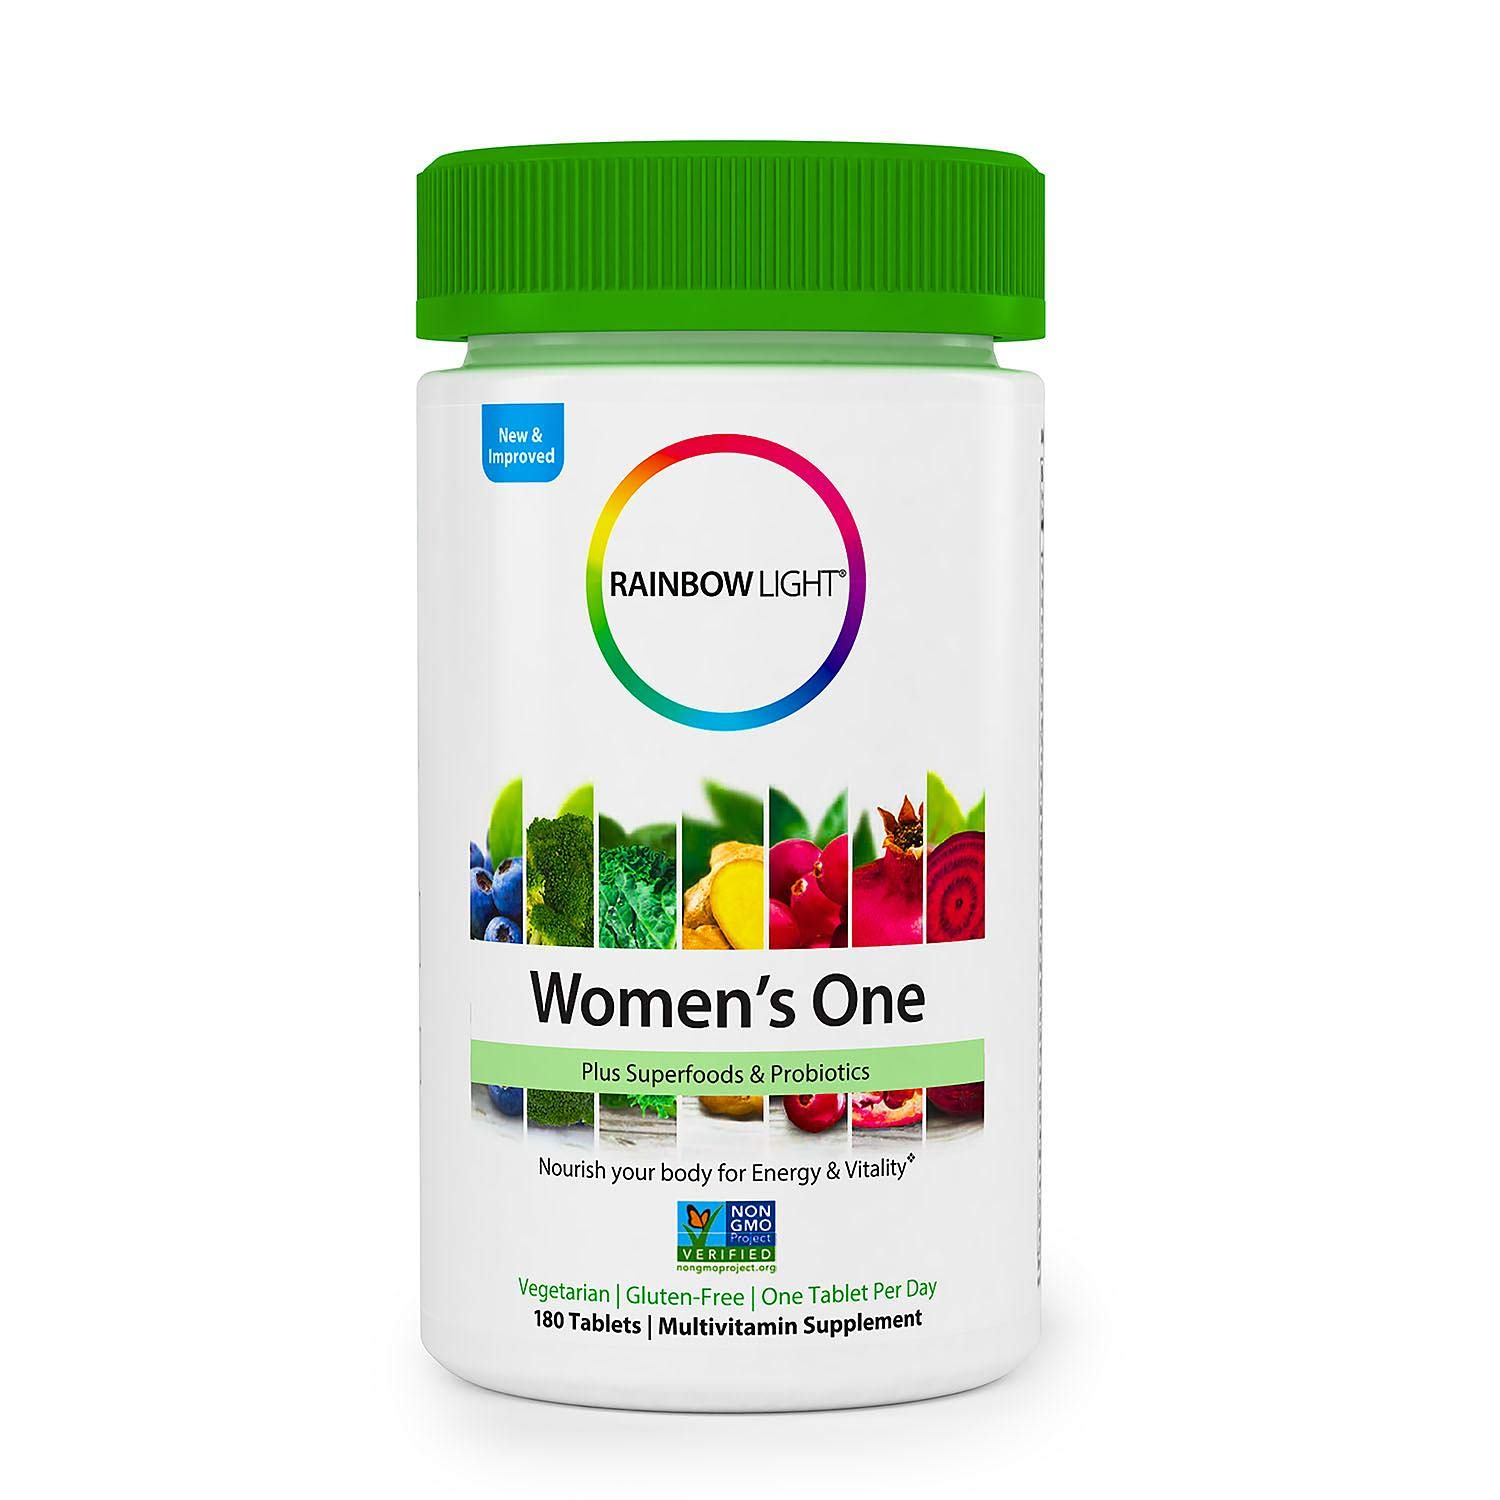 Rainbow Light Women's One Non-GMO Project Verified Multivitamin Plus Superfoods & Probiotics (180 ct.) AS